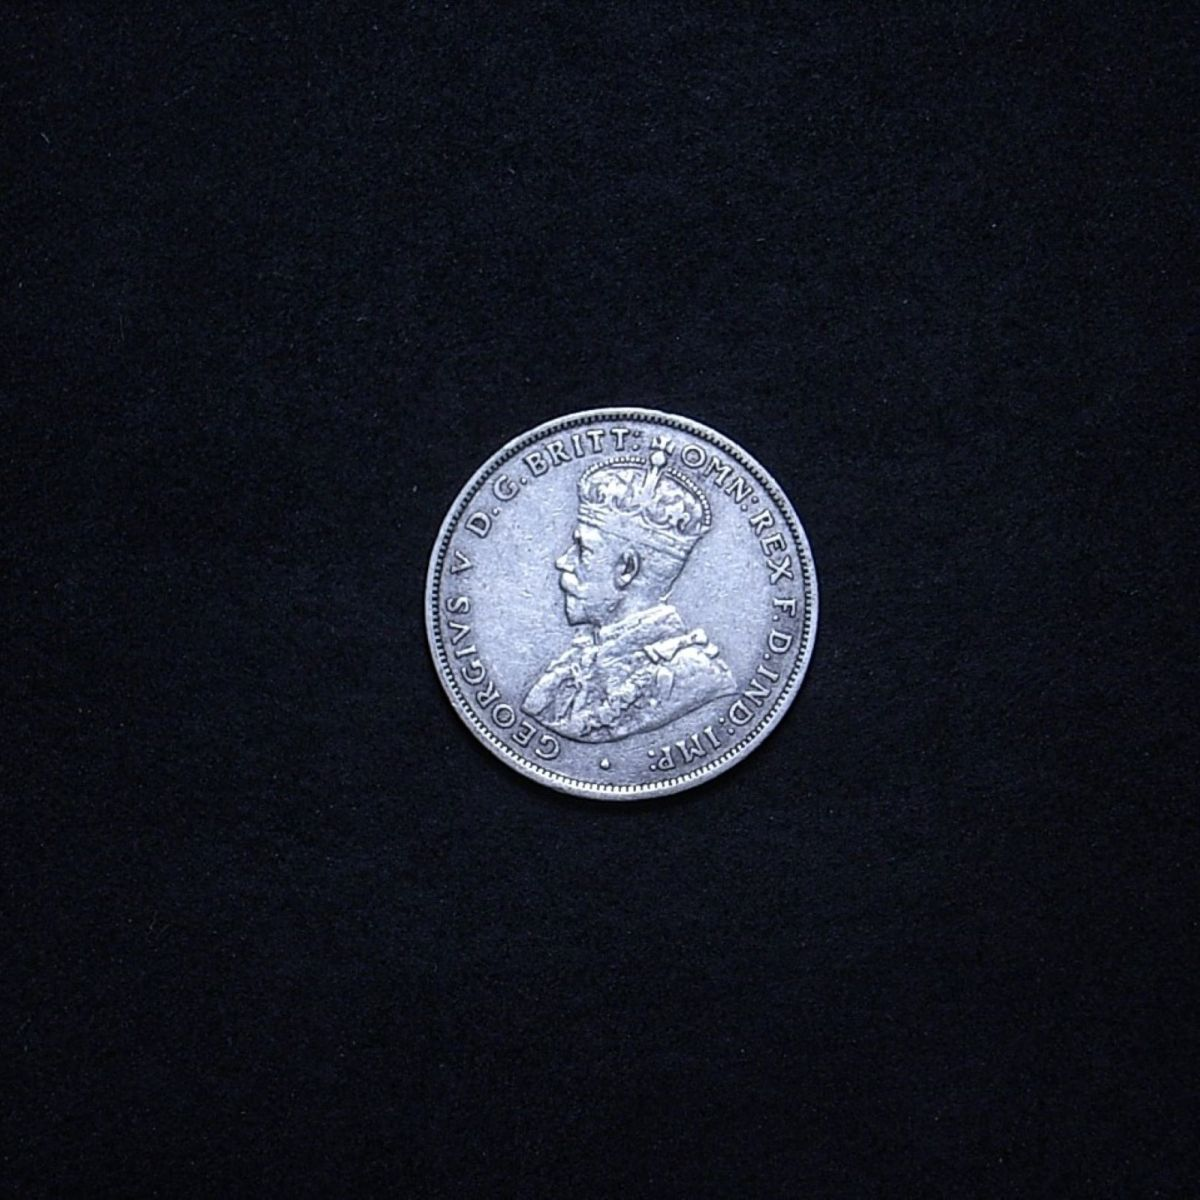 Aussie 1928 florin obverse showing overall appearance of the coin